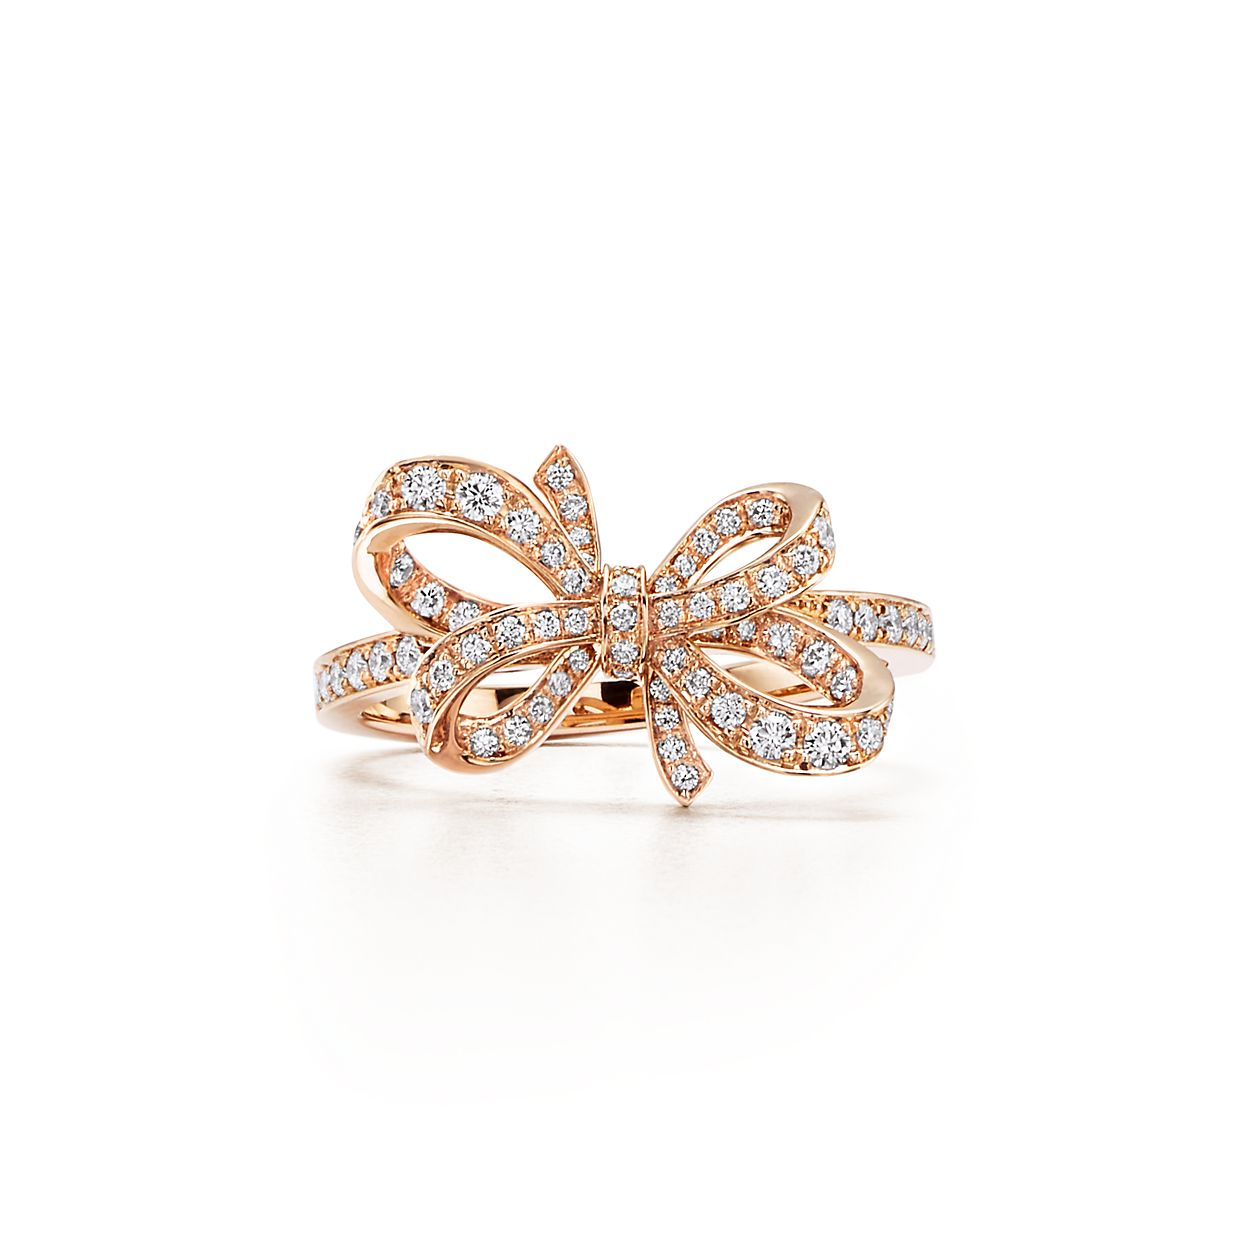 Tiffany Bow Ribbon Ring In 18k Rose Gold With Round Brilliant Diamond Mobil Legend 966 Diamonds Co